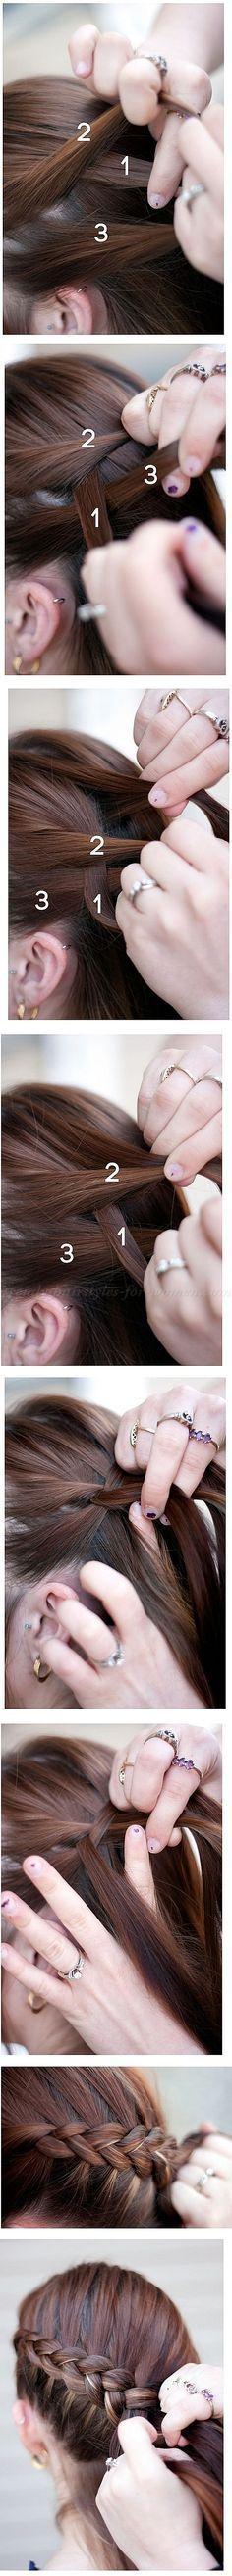 20 Creative Braid hairstyles ideas